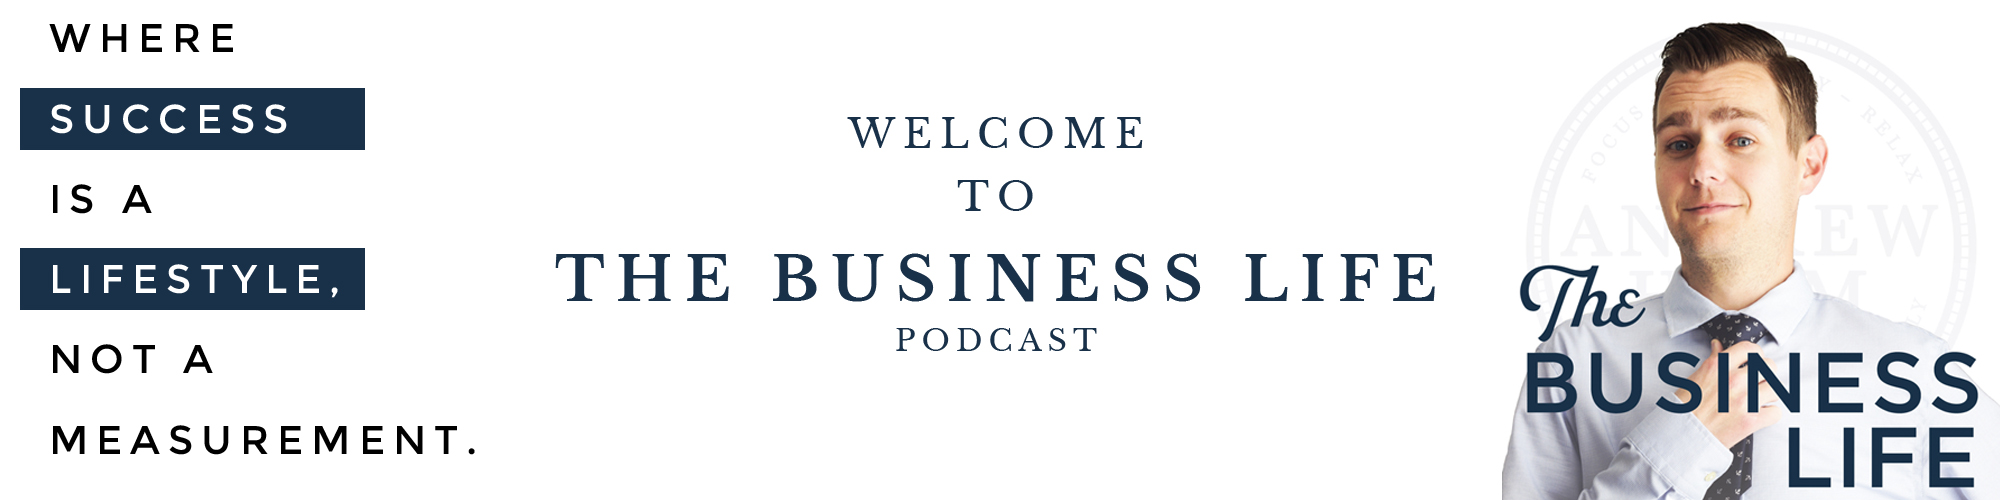 The Business Life podcast: Where success is a lifestyle, not a measurement.